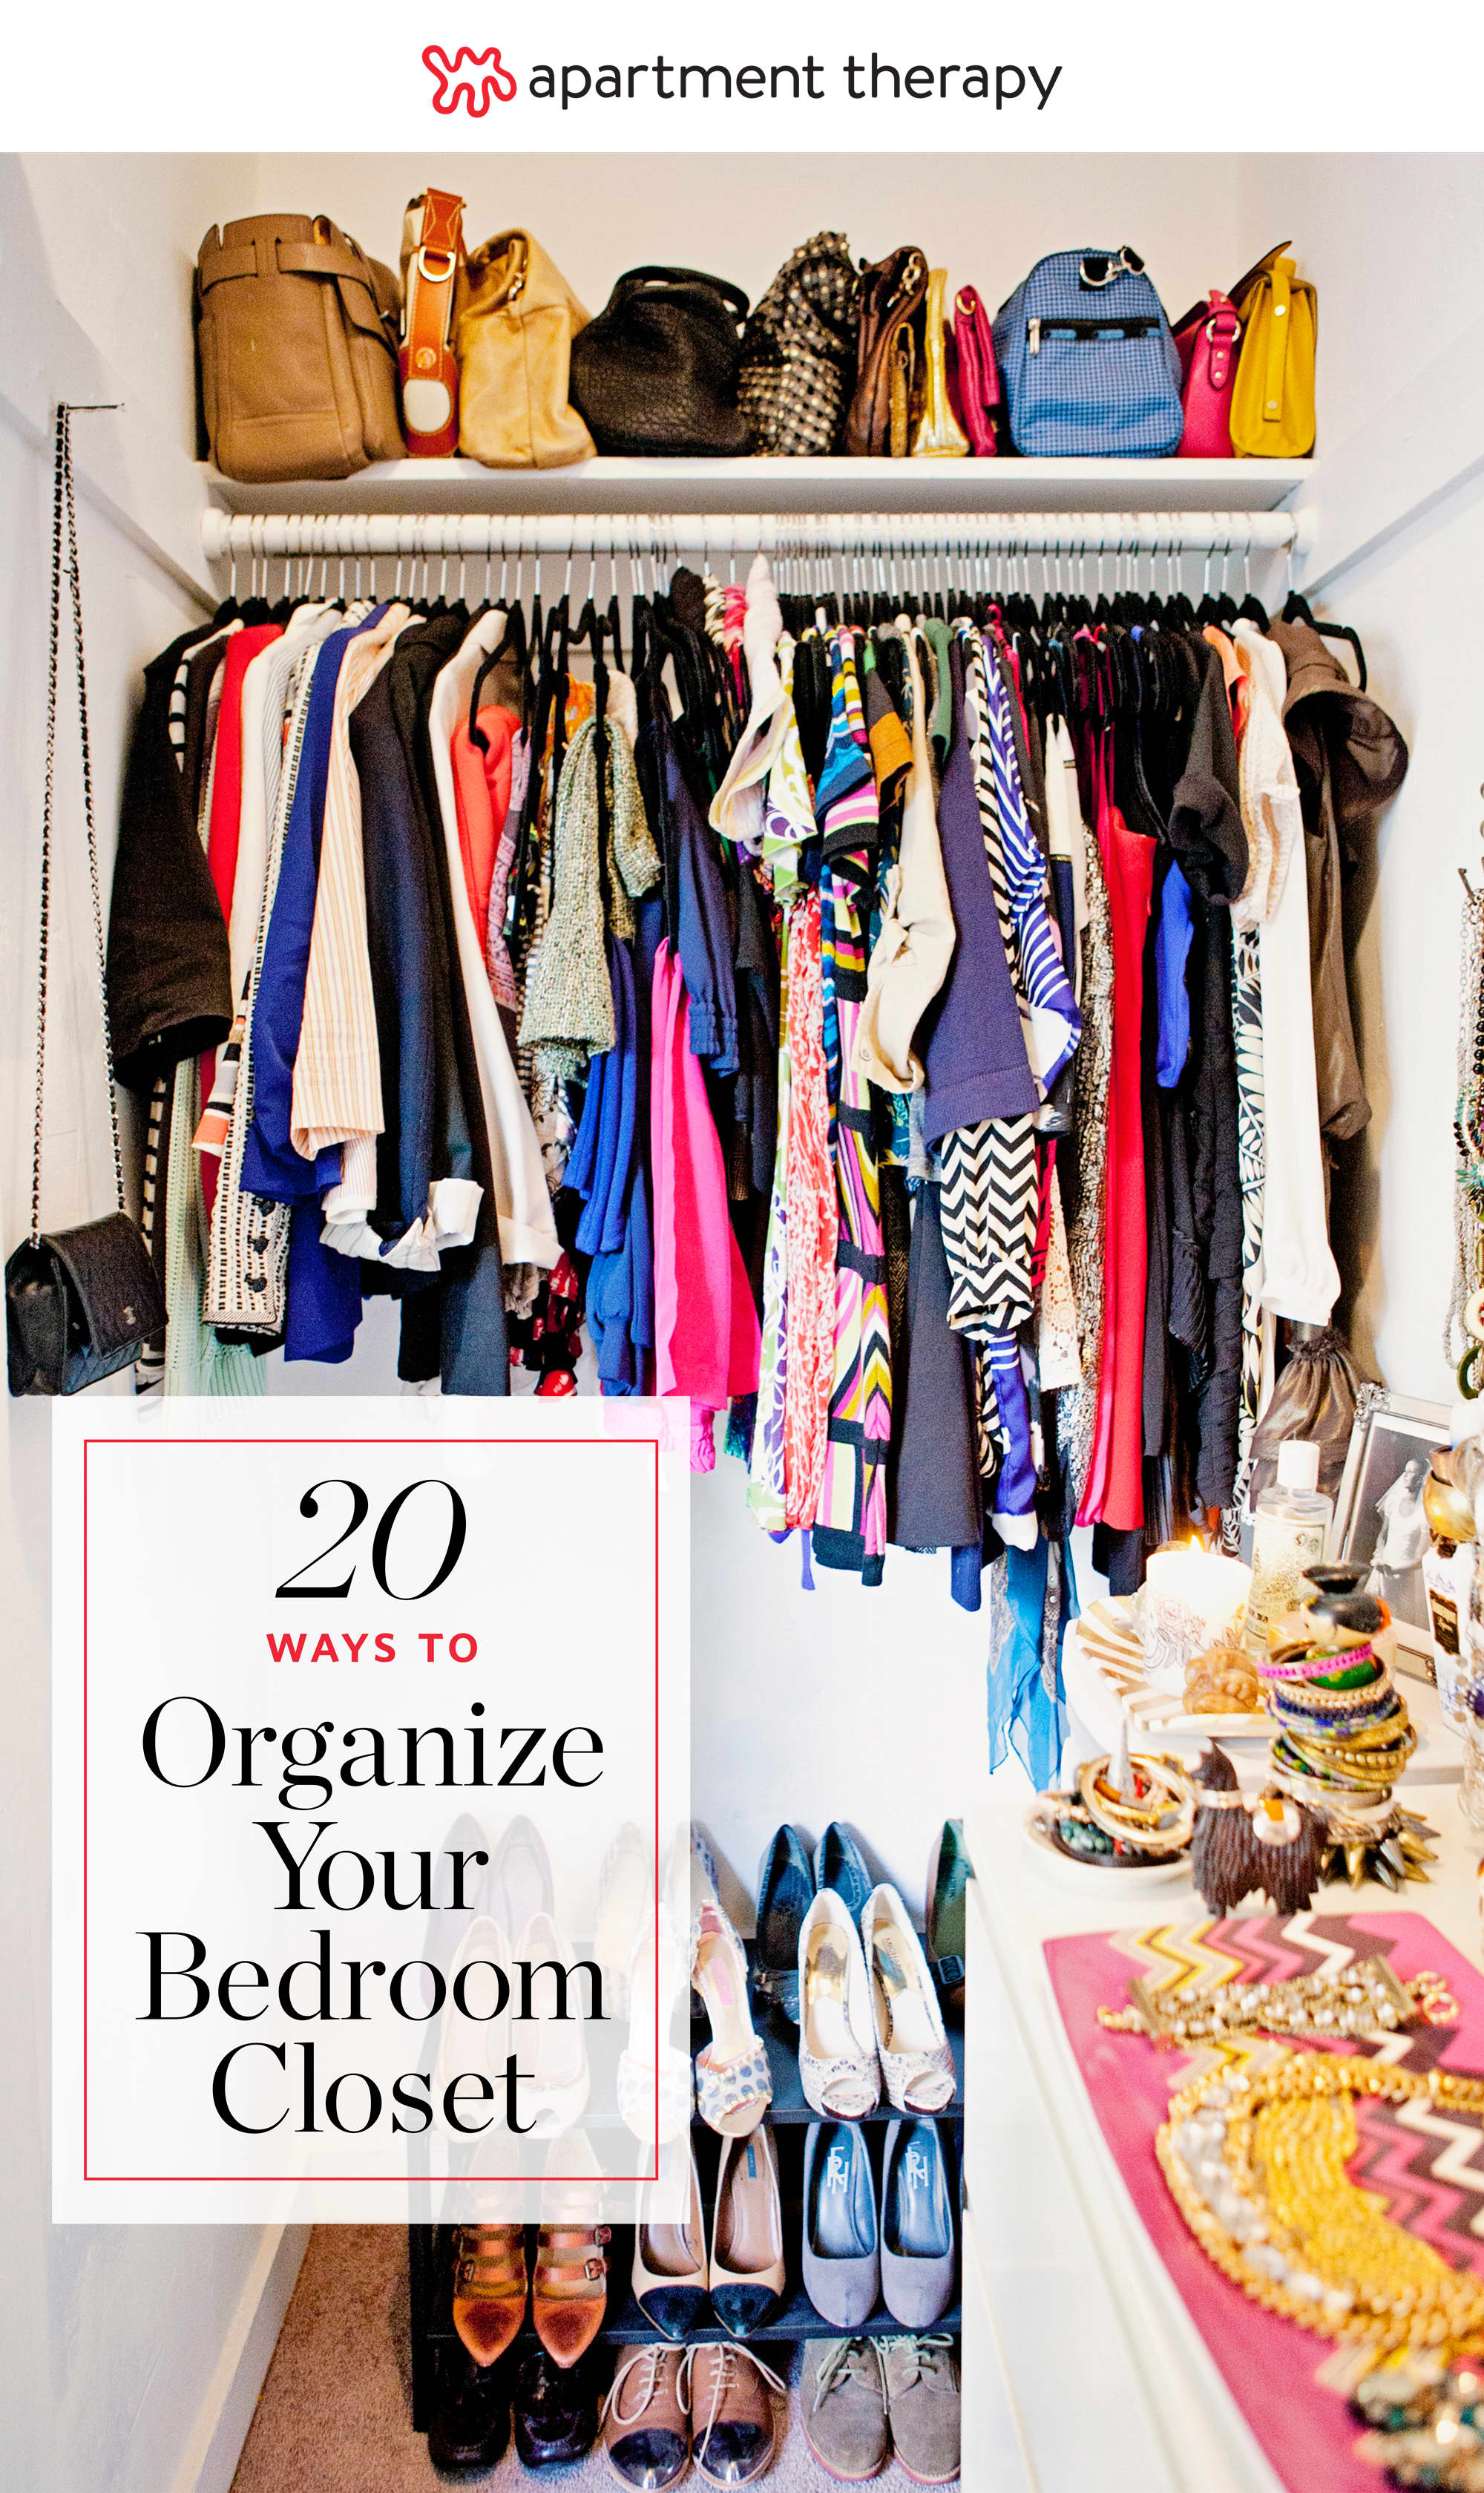 20 ideas for organizing your bedroom closet apartment 16578 | 72a82b3599182dfb5db4d1717d214ccbc0a7f45a